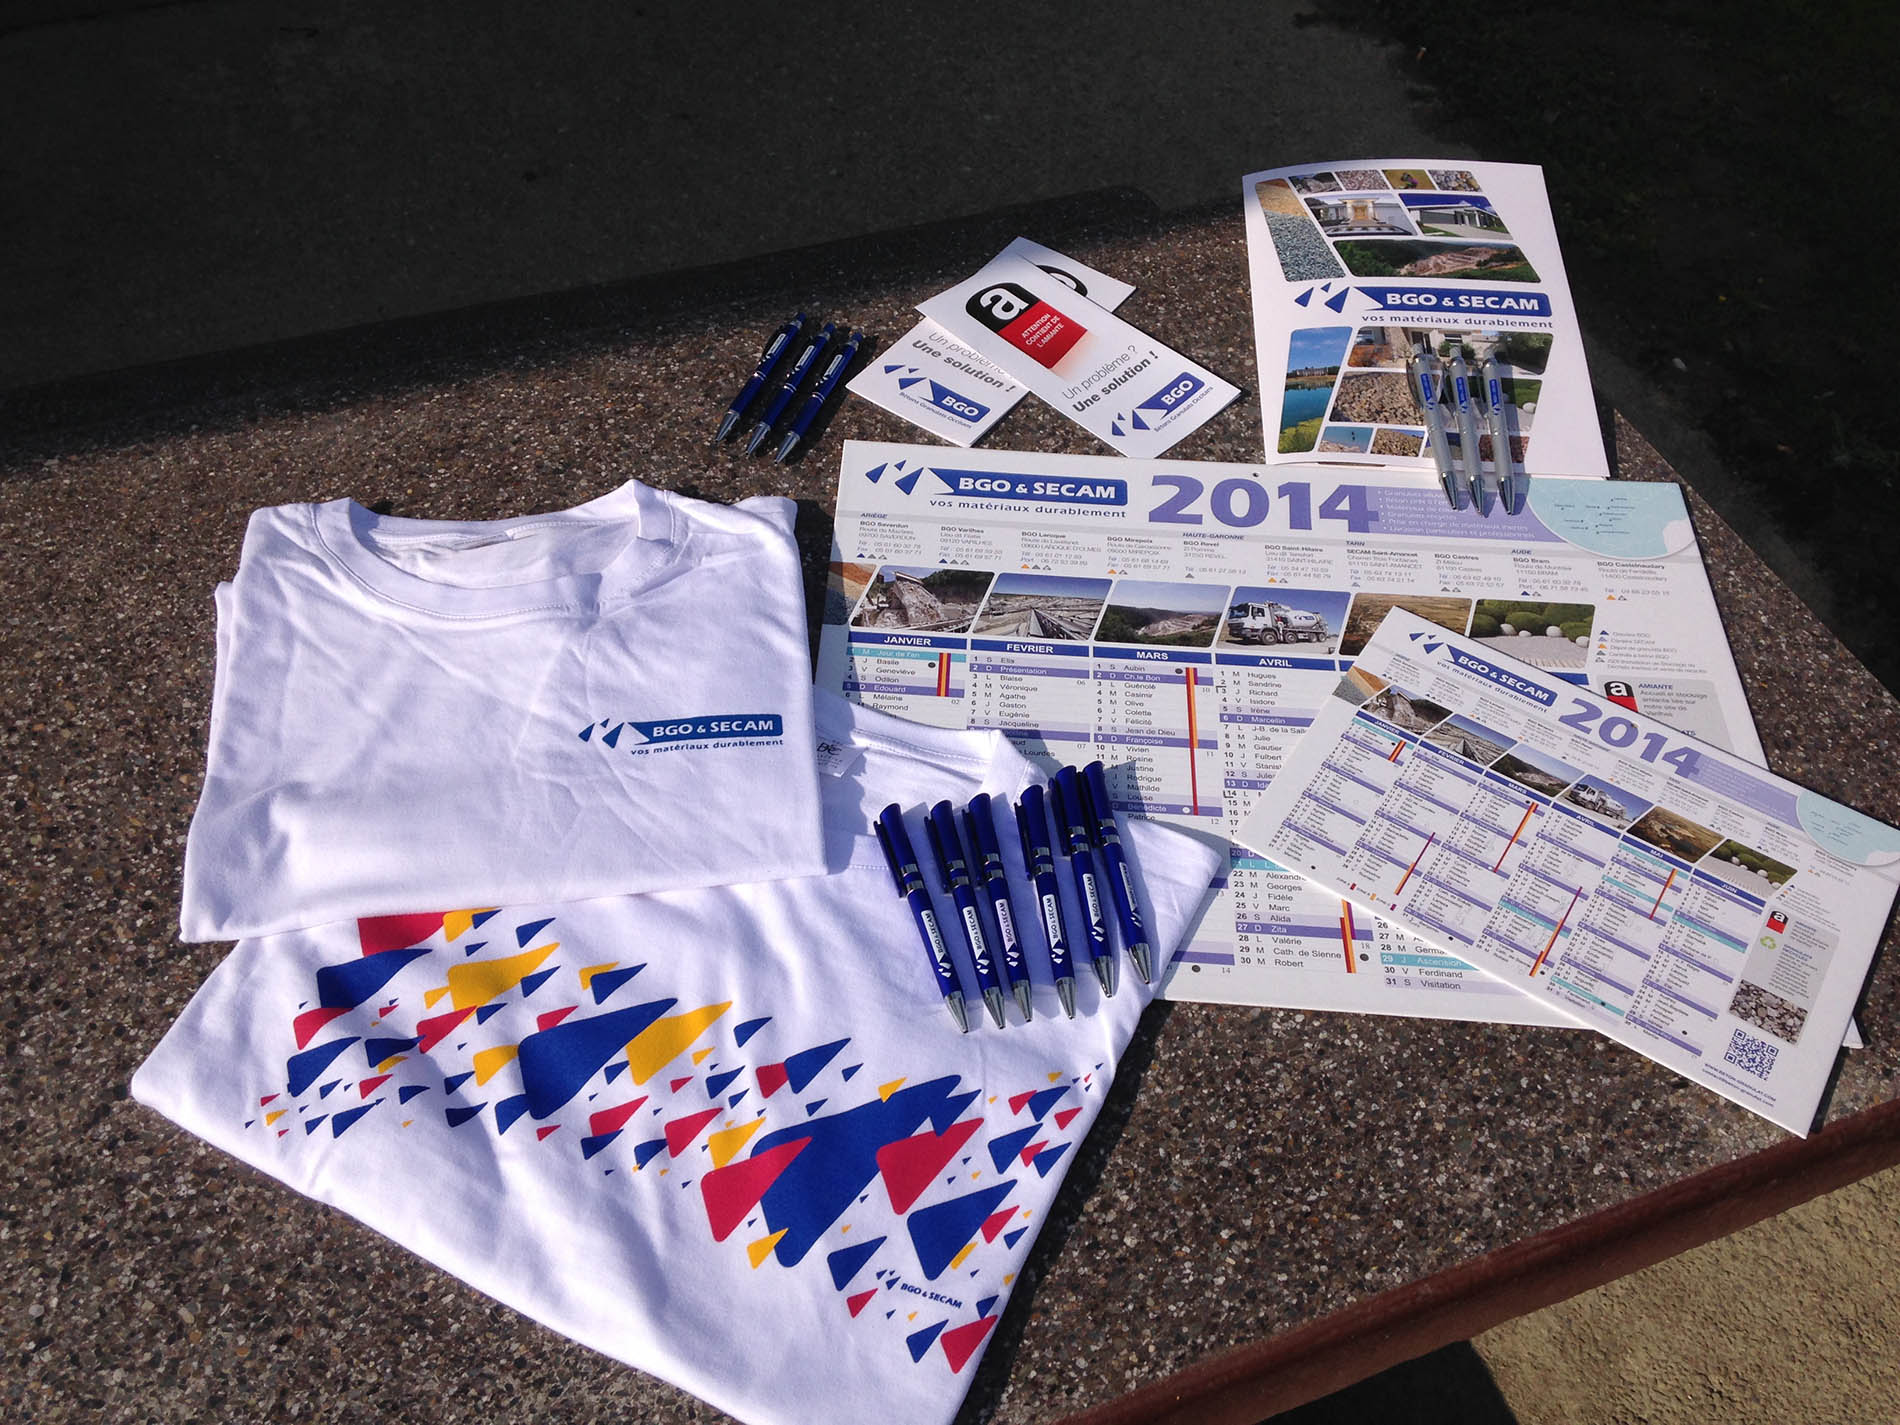 Goodies BGO&SECAM 2014